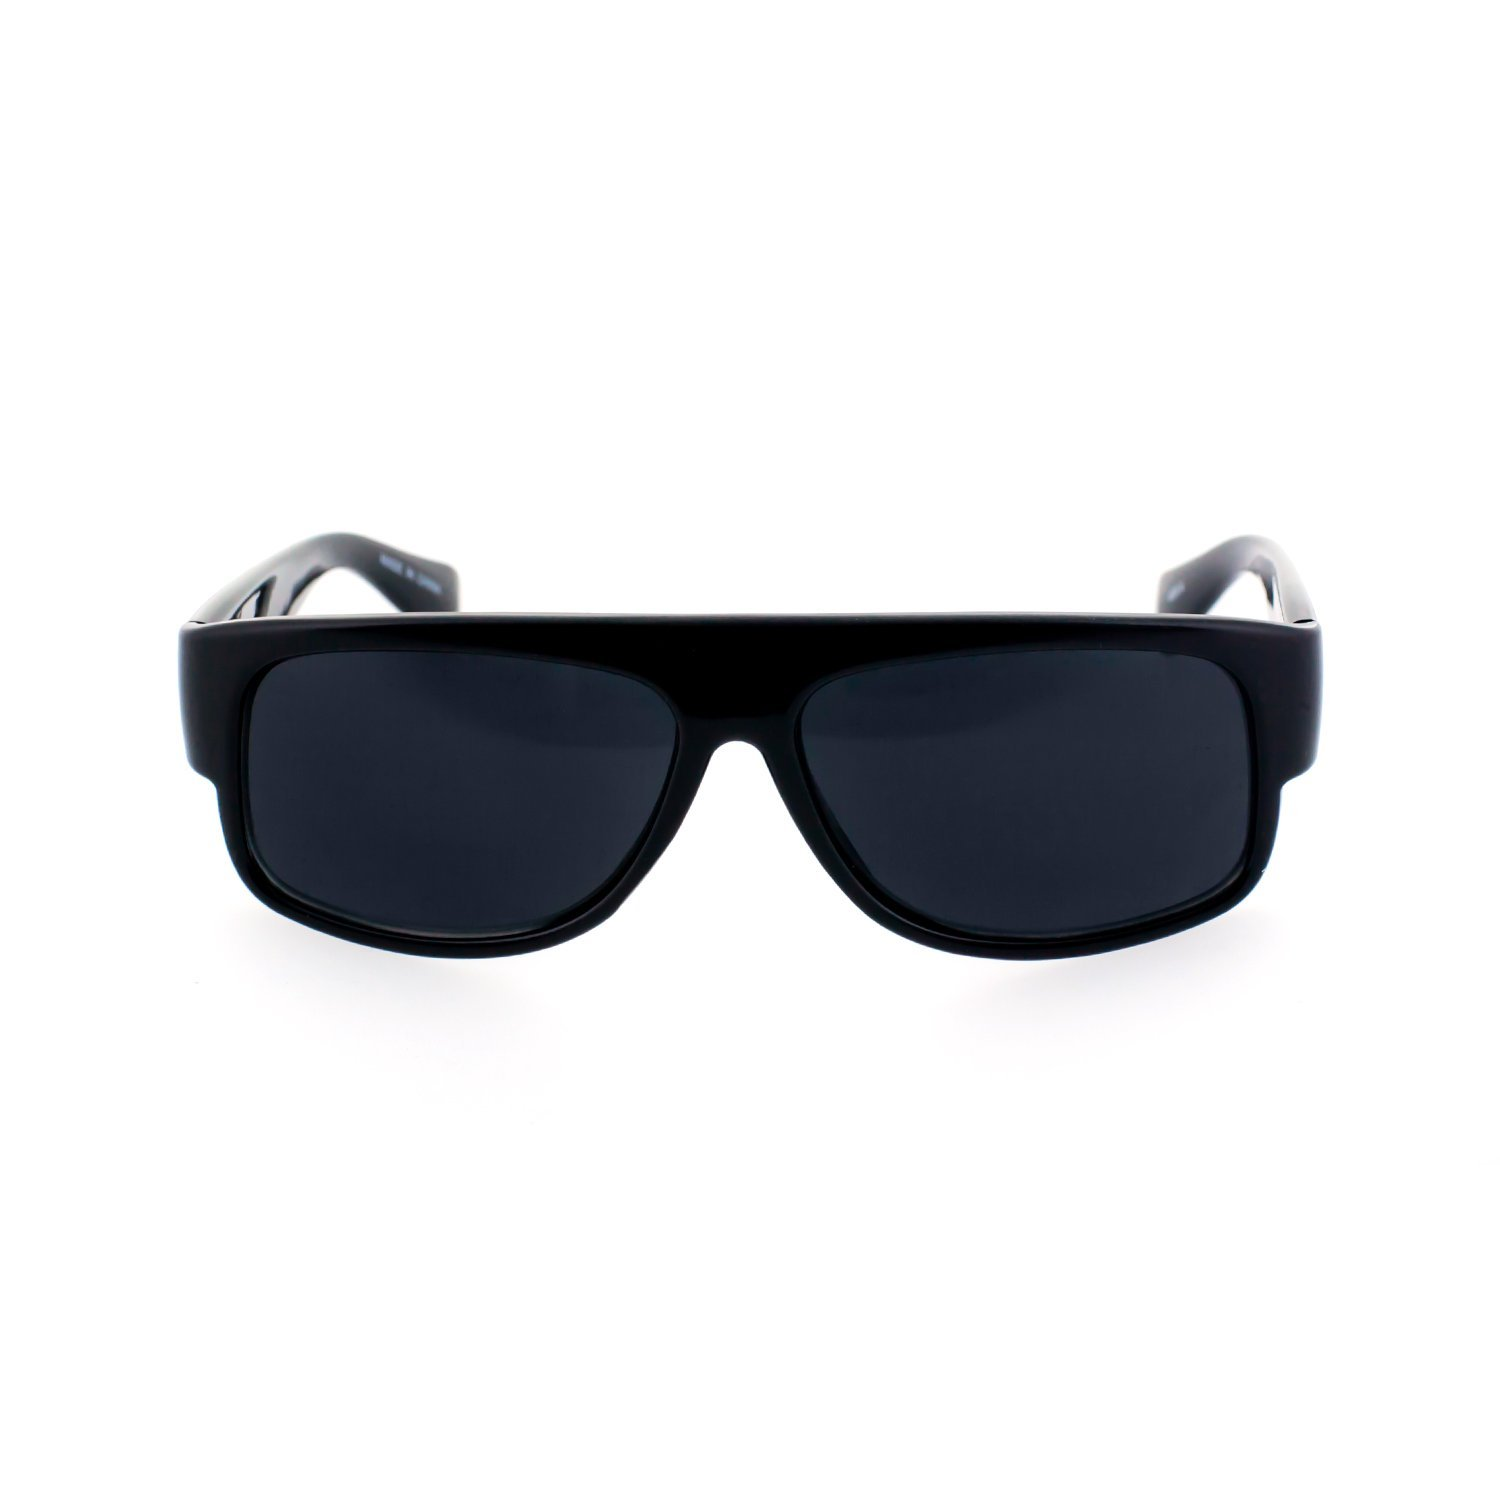 76316461f568 Get Quotations · MLC EYEWEAR ® Original OG Gangster Style Shades Sunglasses  w  Super Dark Lens (Black